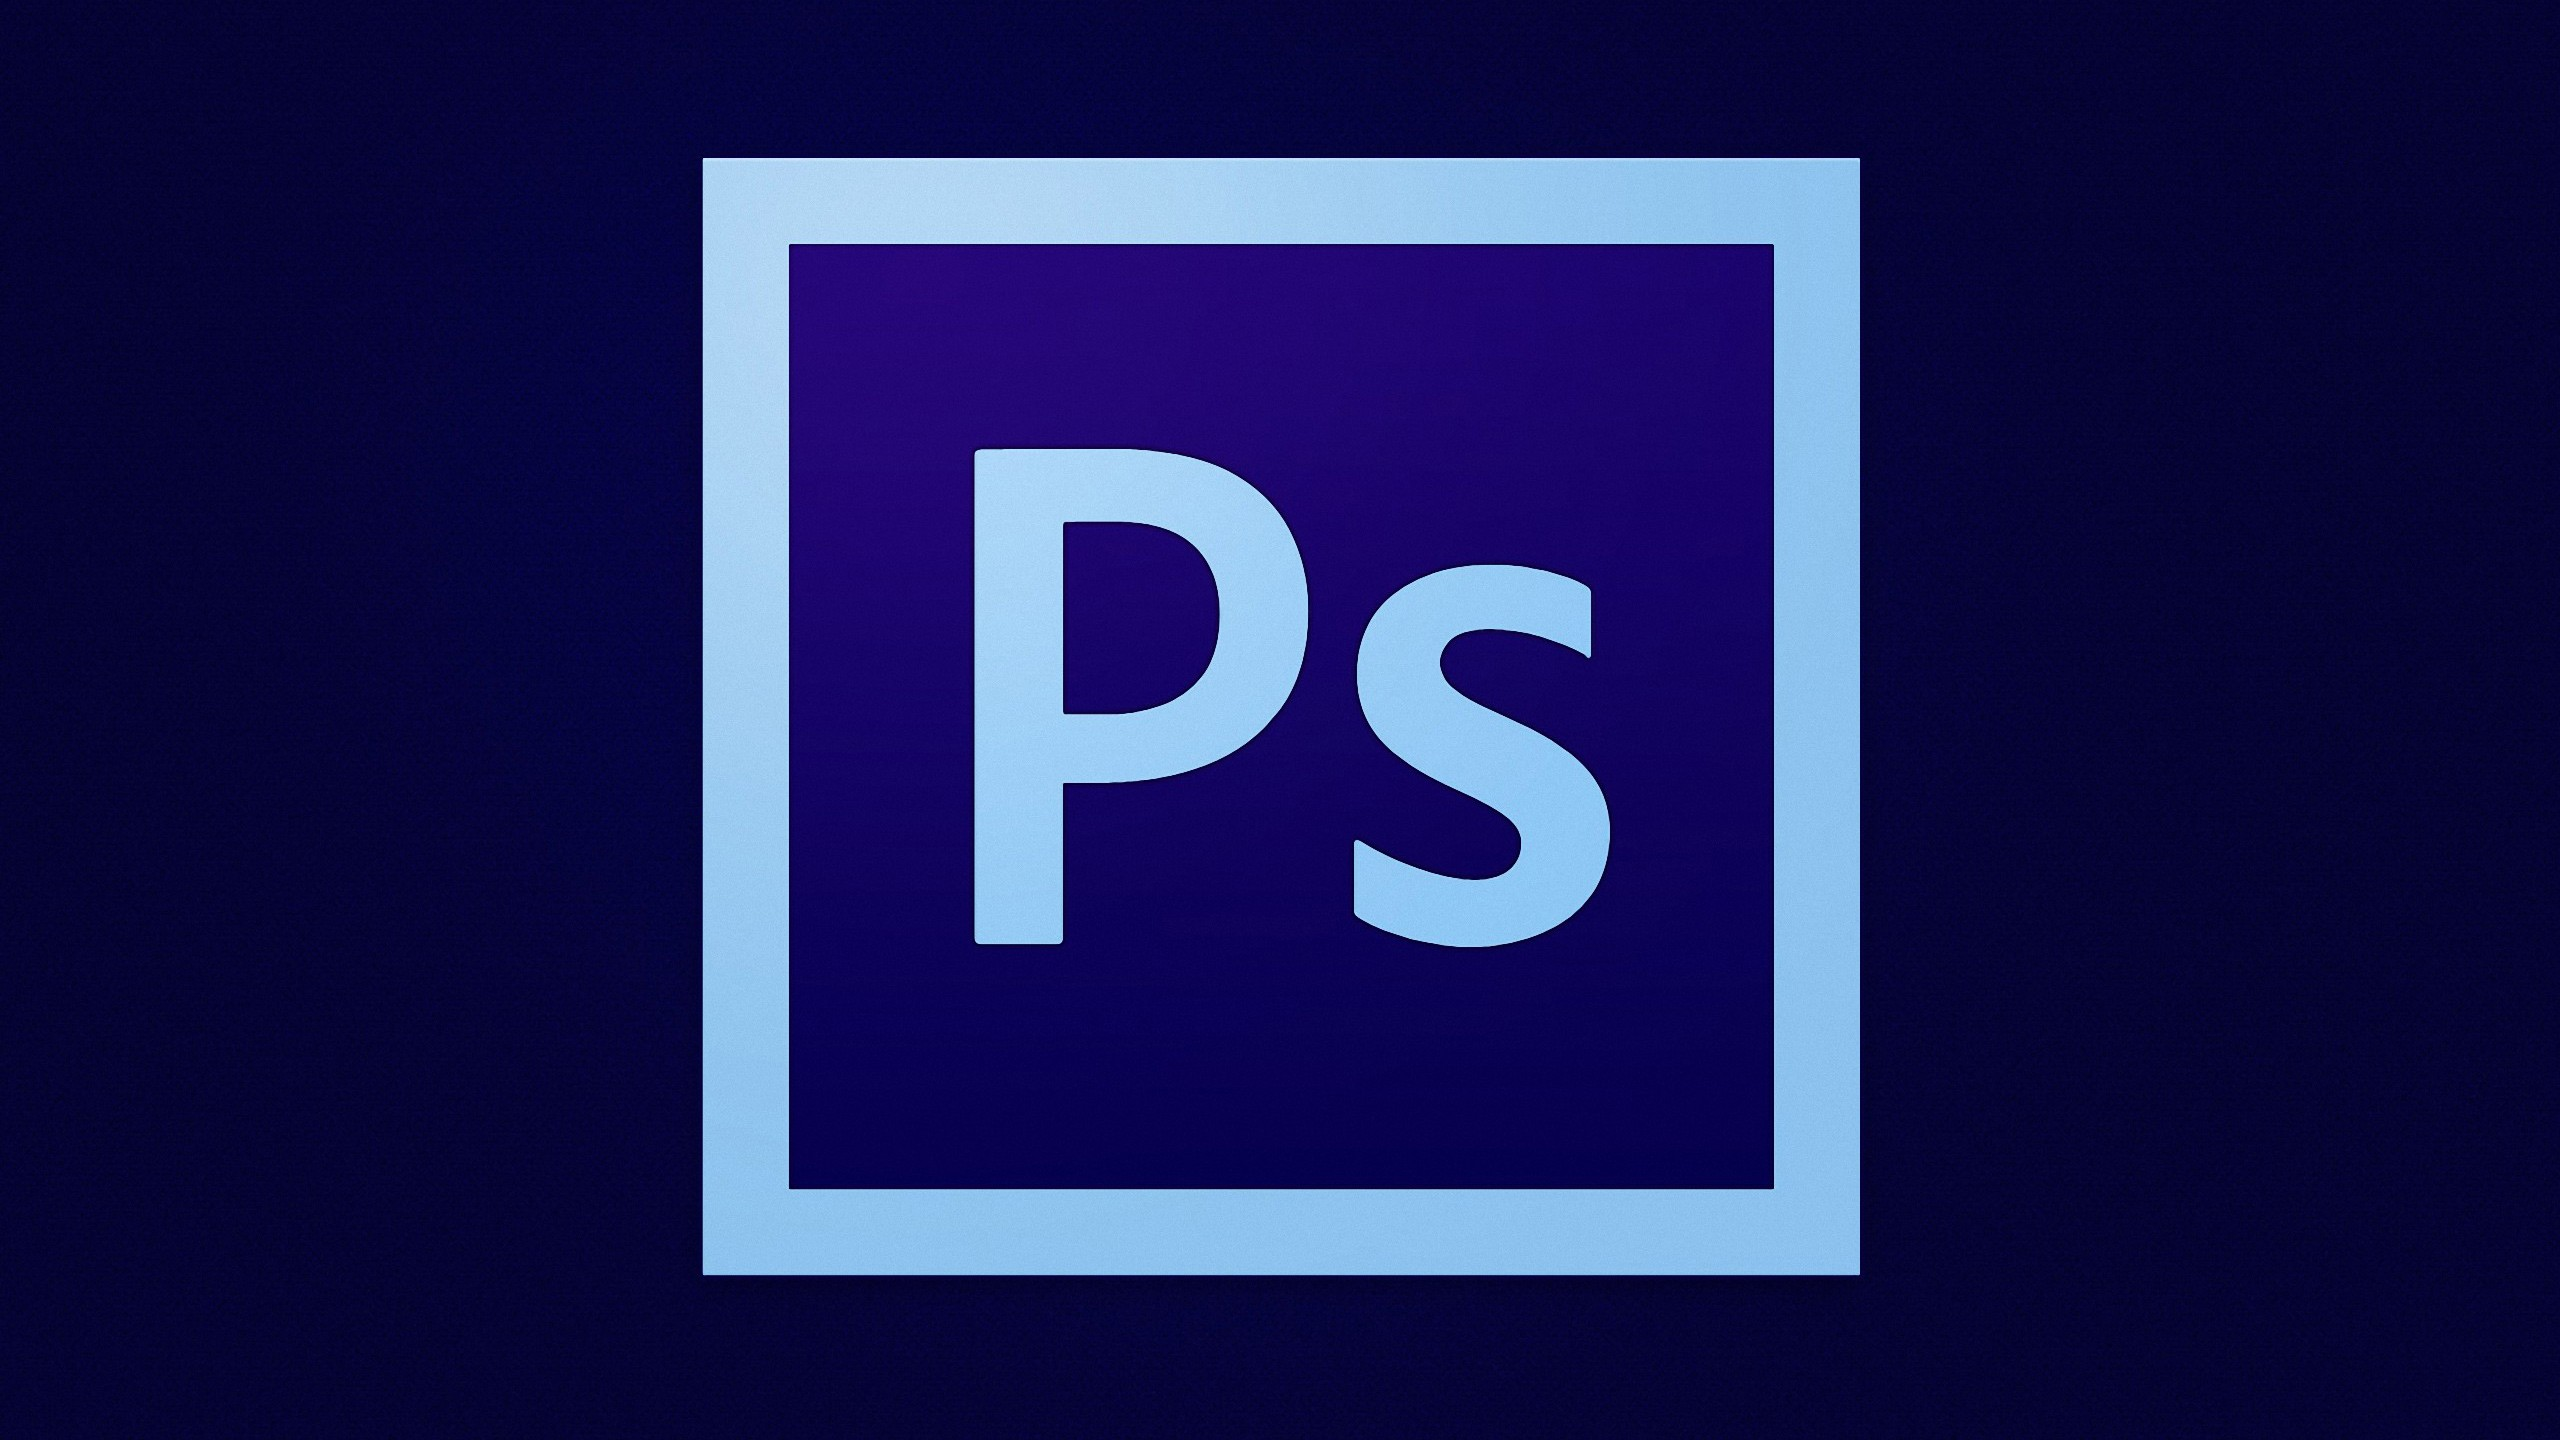 adobe photoshop logo elita aisushi co